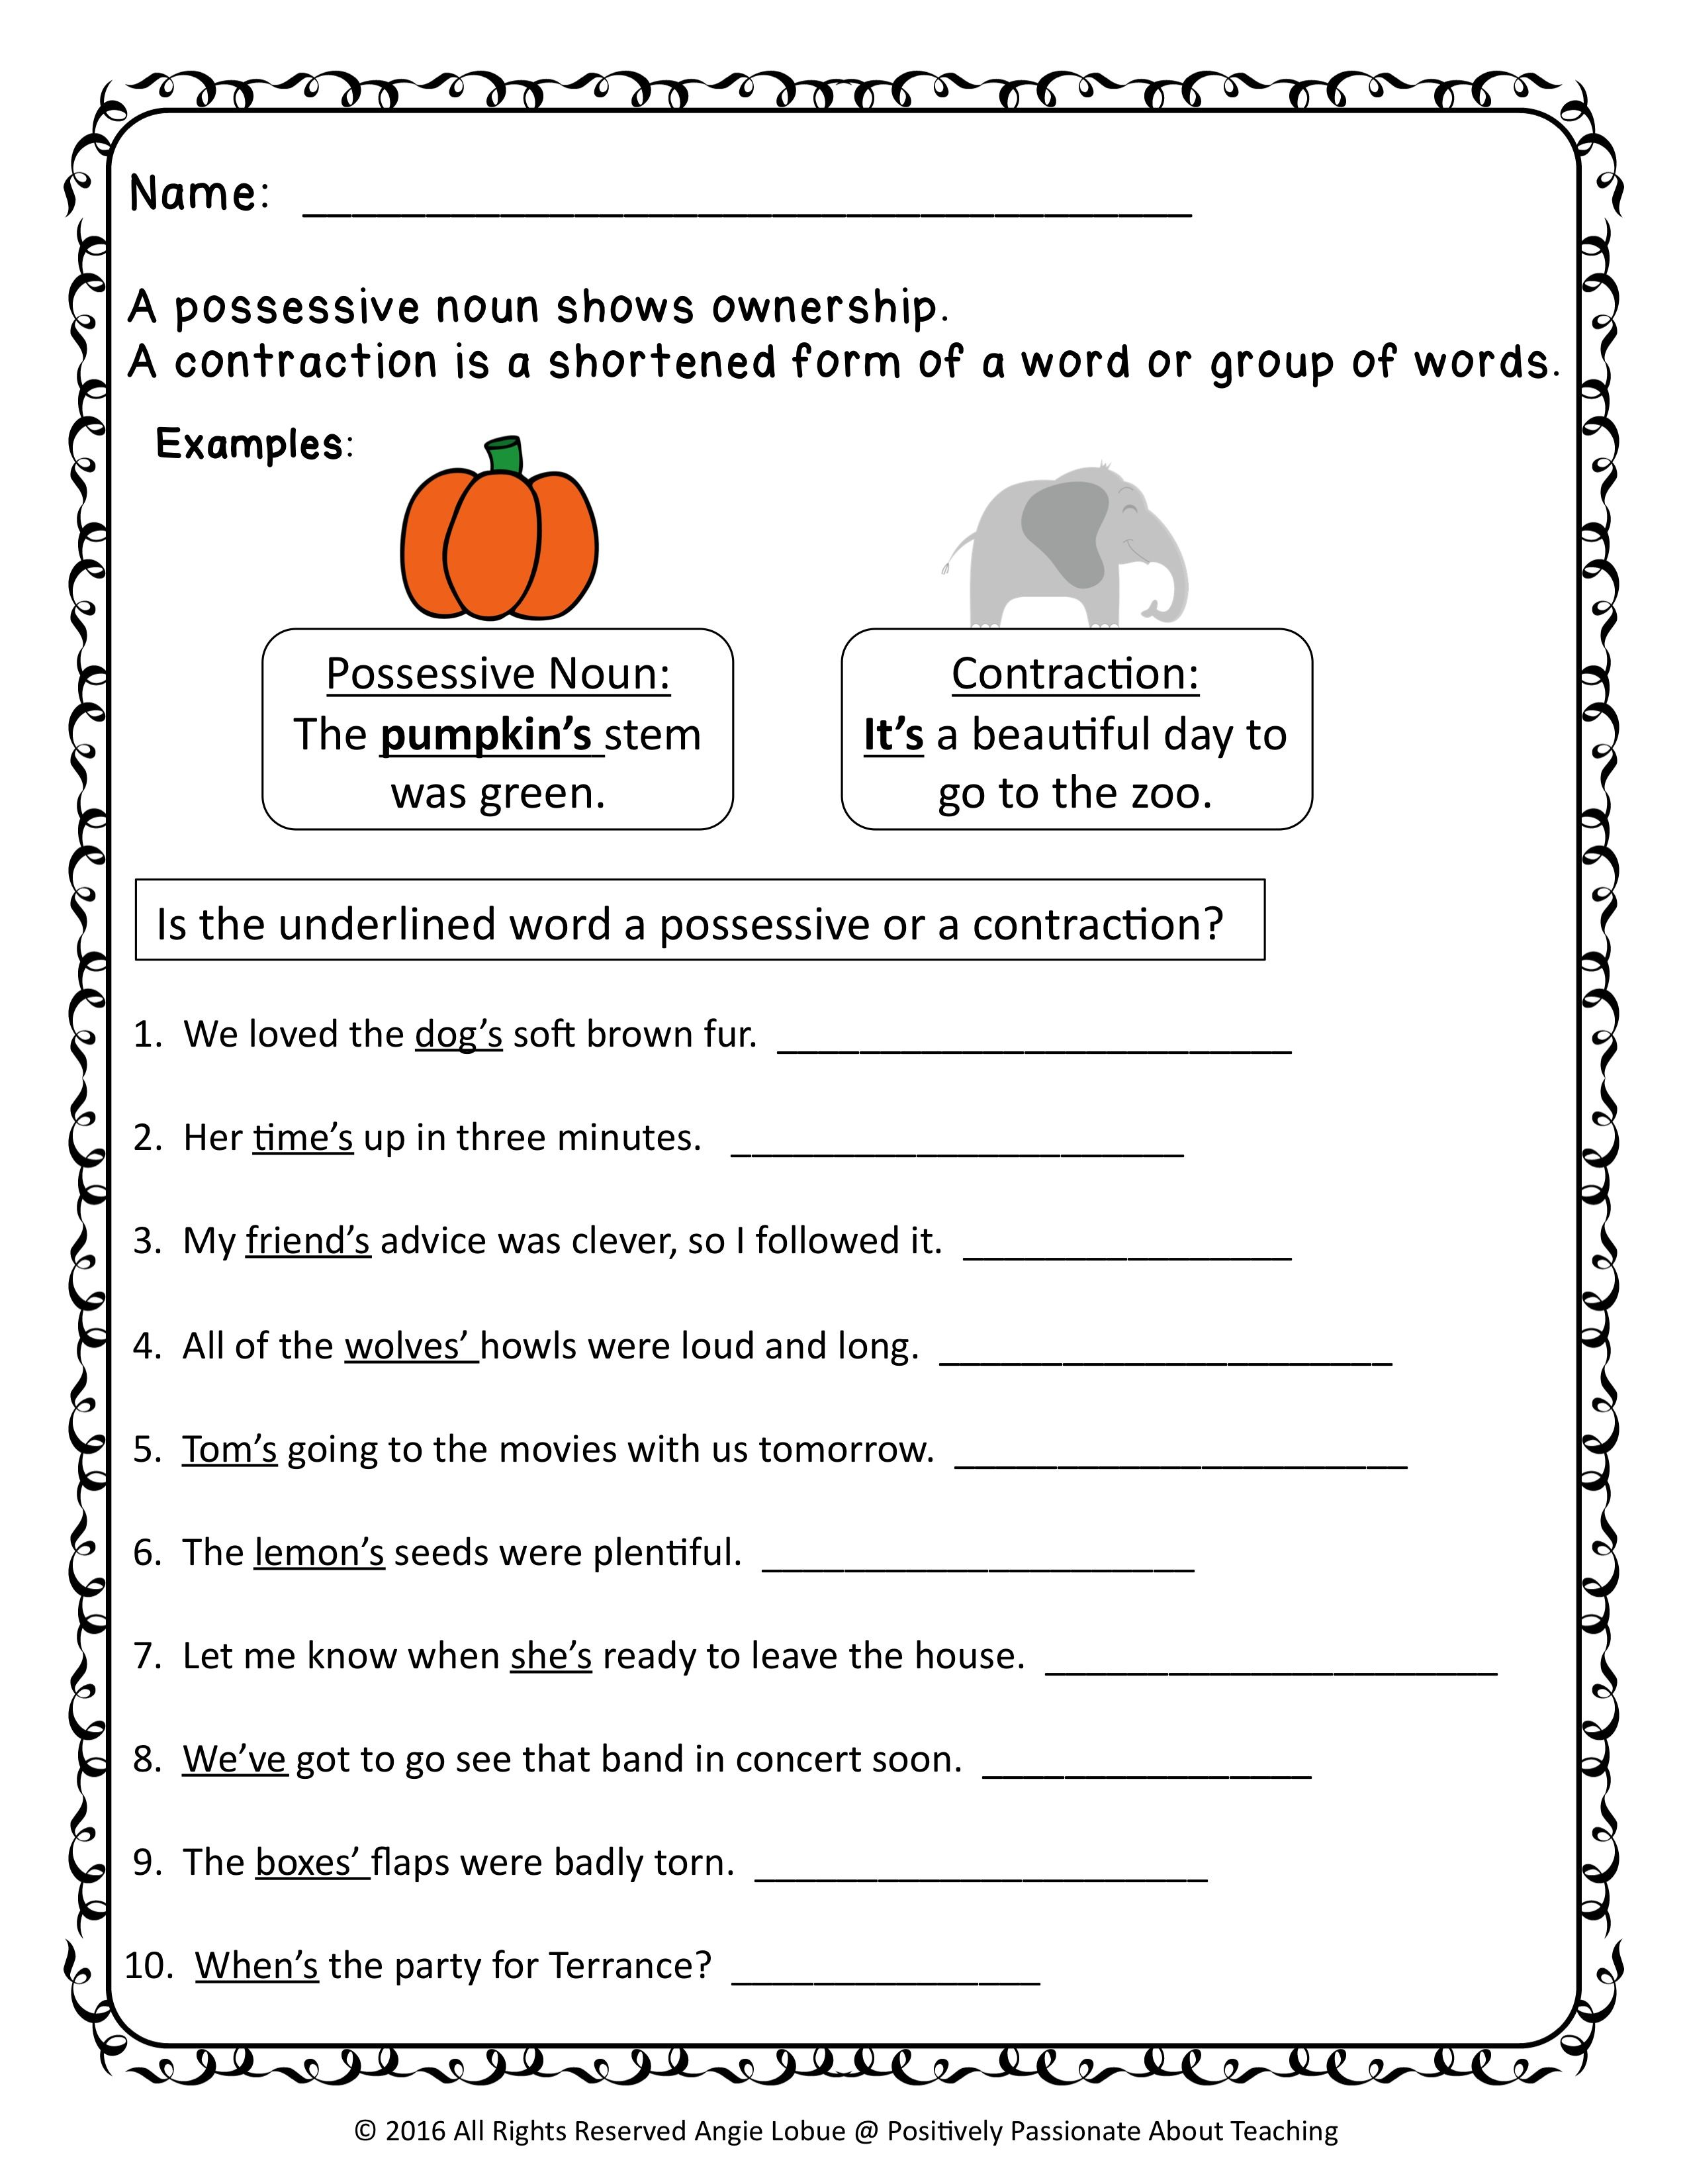 hight resolution of Possessive or contraction FREEBIE -includes answer key  www.facebook.com/positivelypassionateaboutteaching   Engaging lesson plans